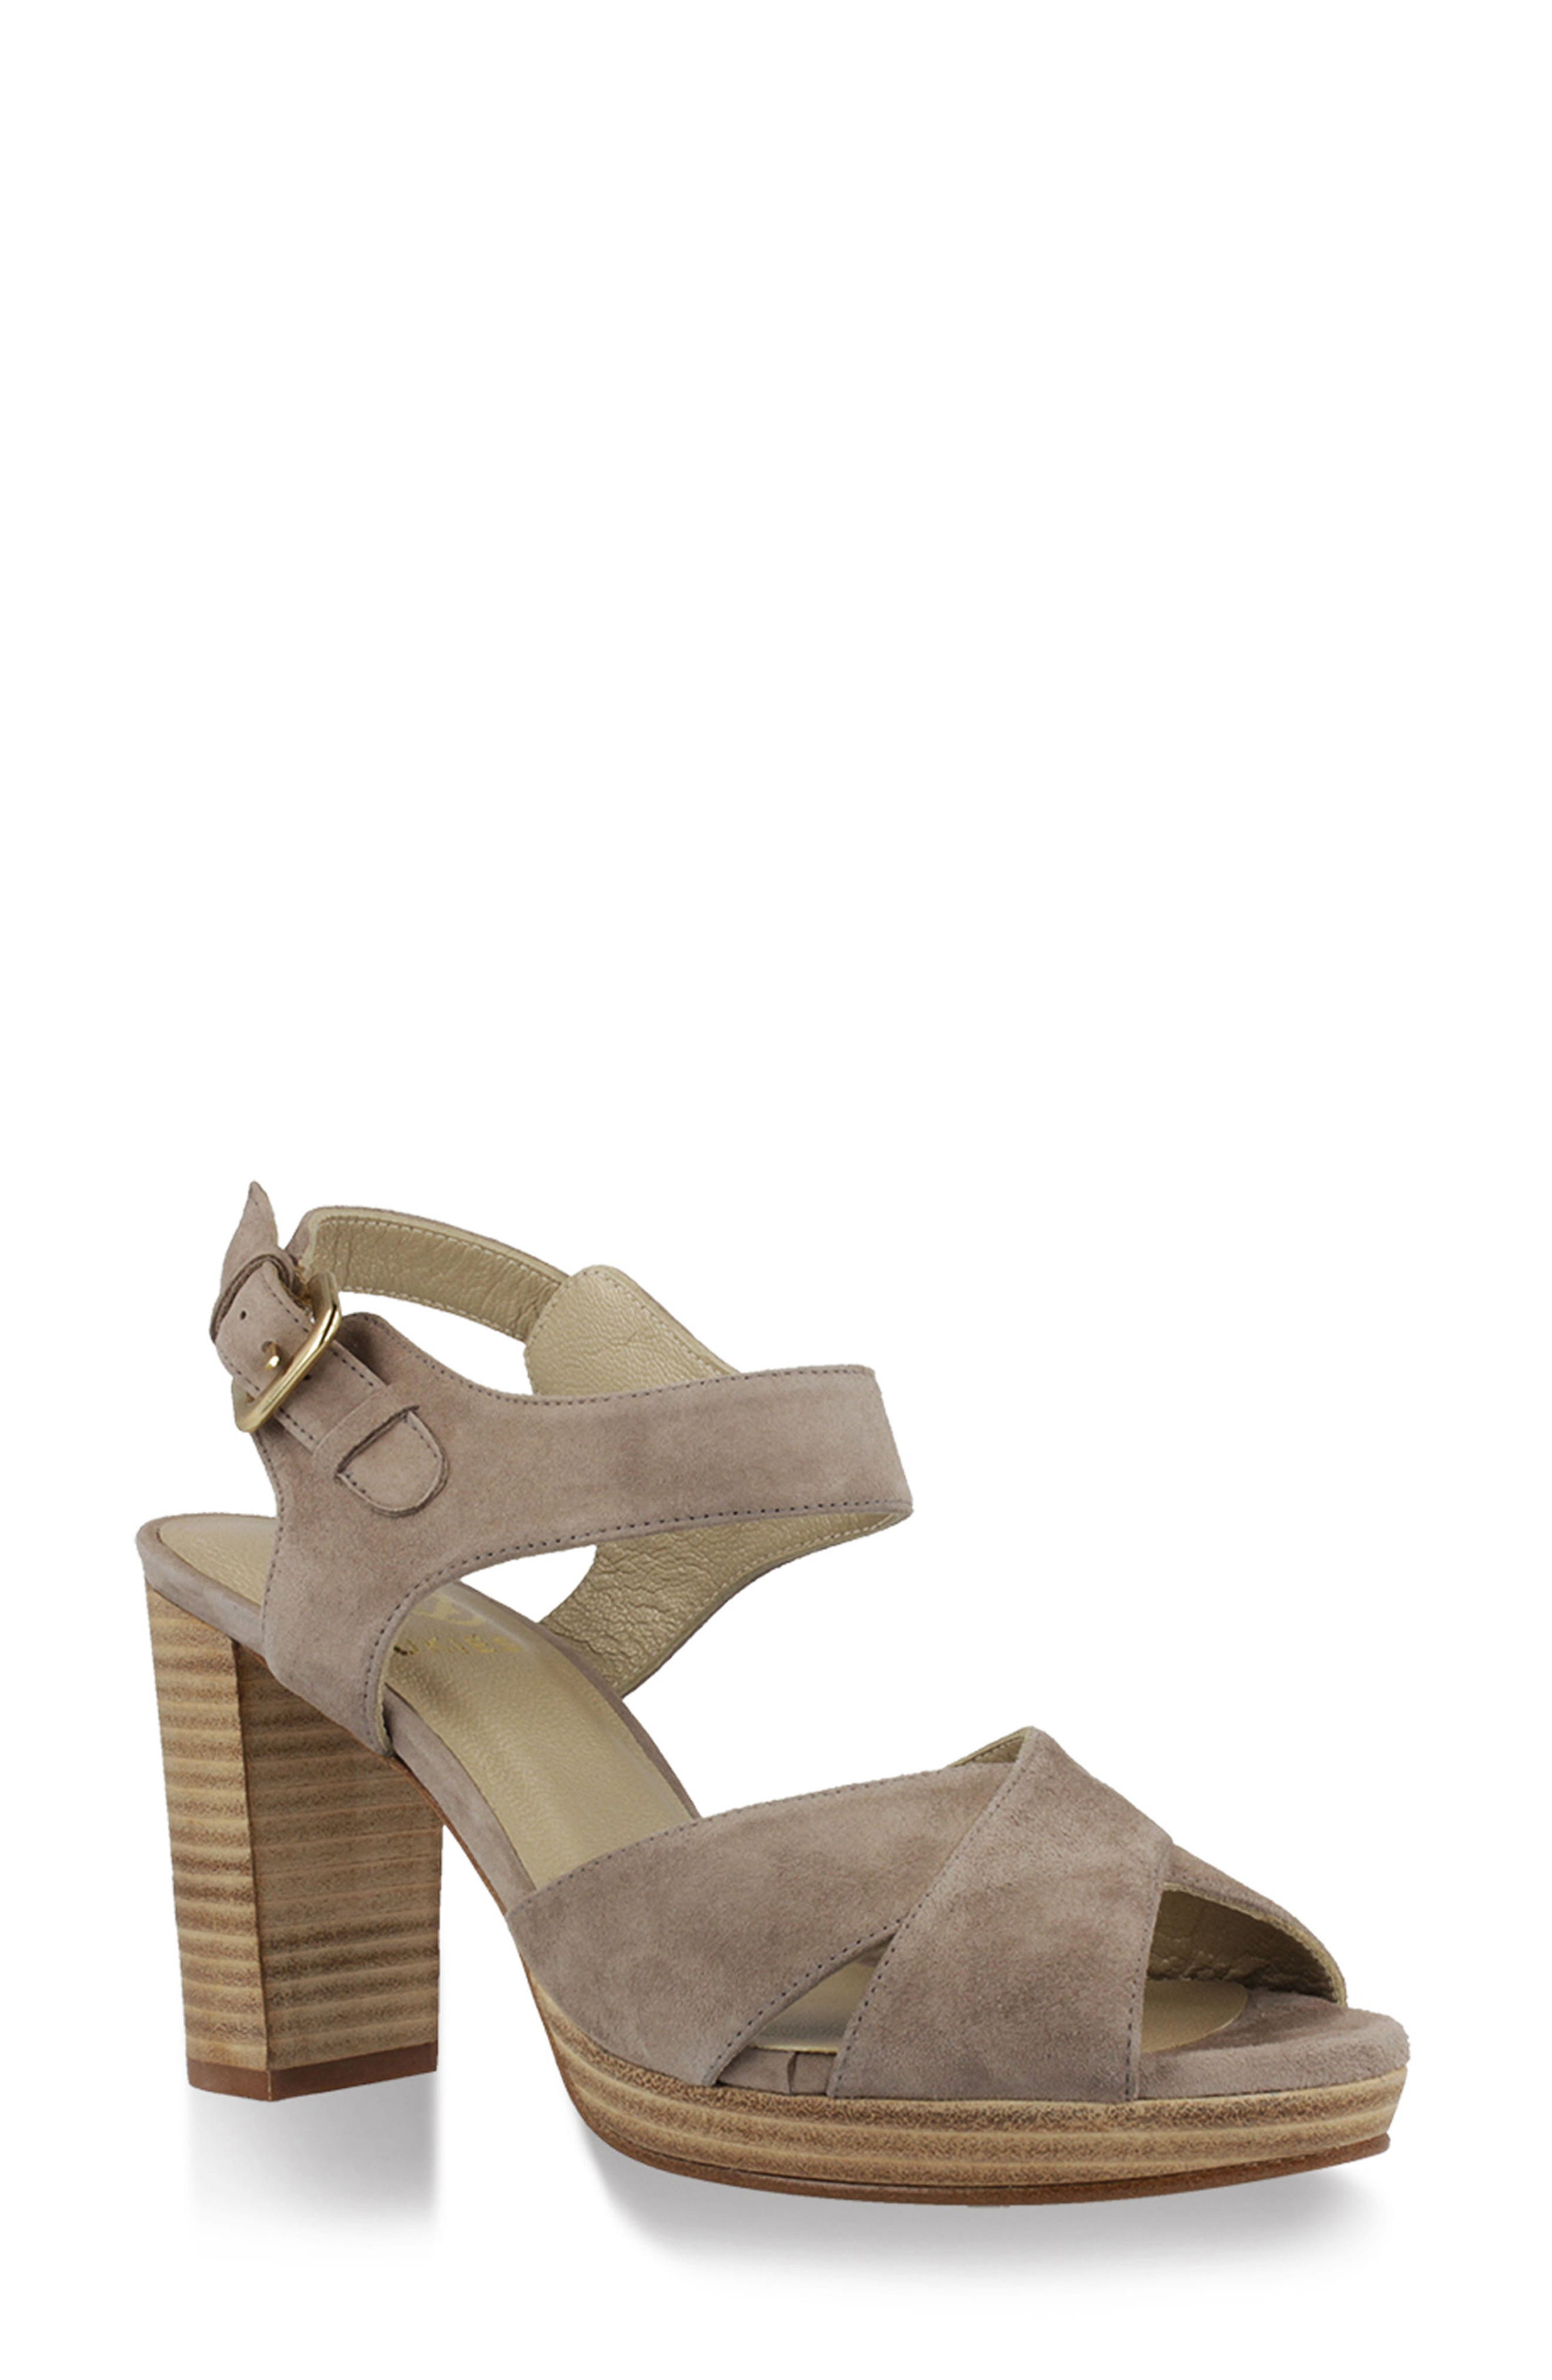 Tango Sandal,                         Main,                         color, Taupe Suede